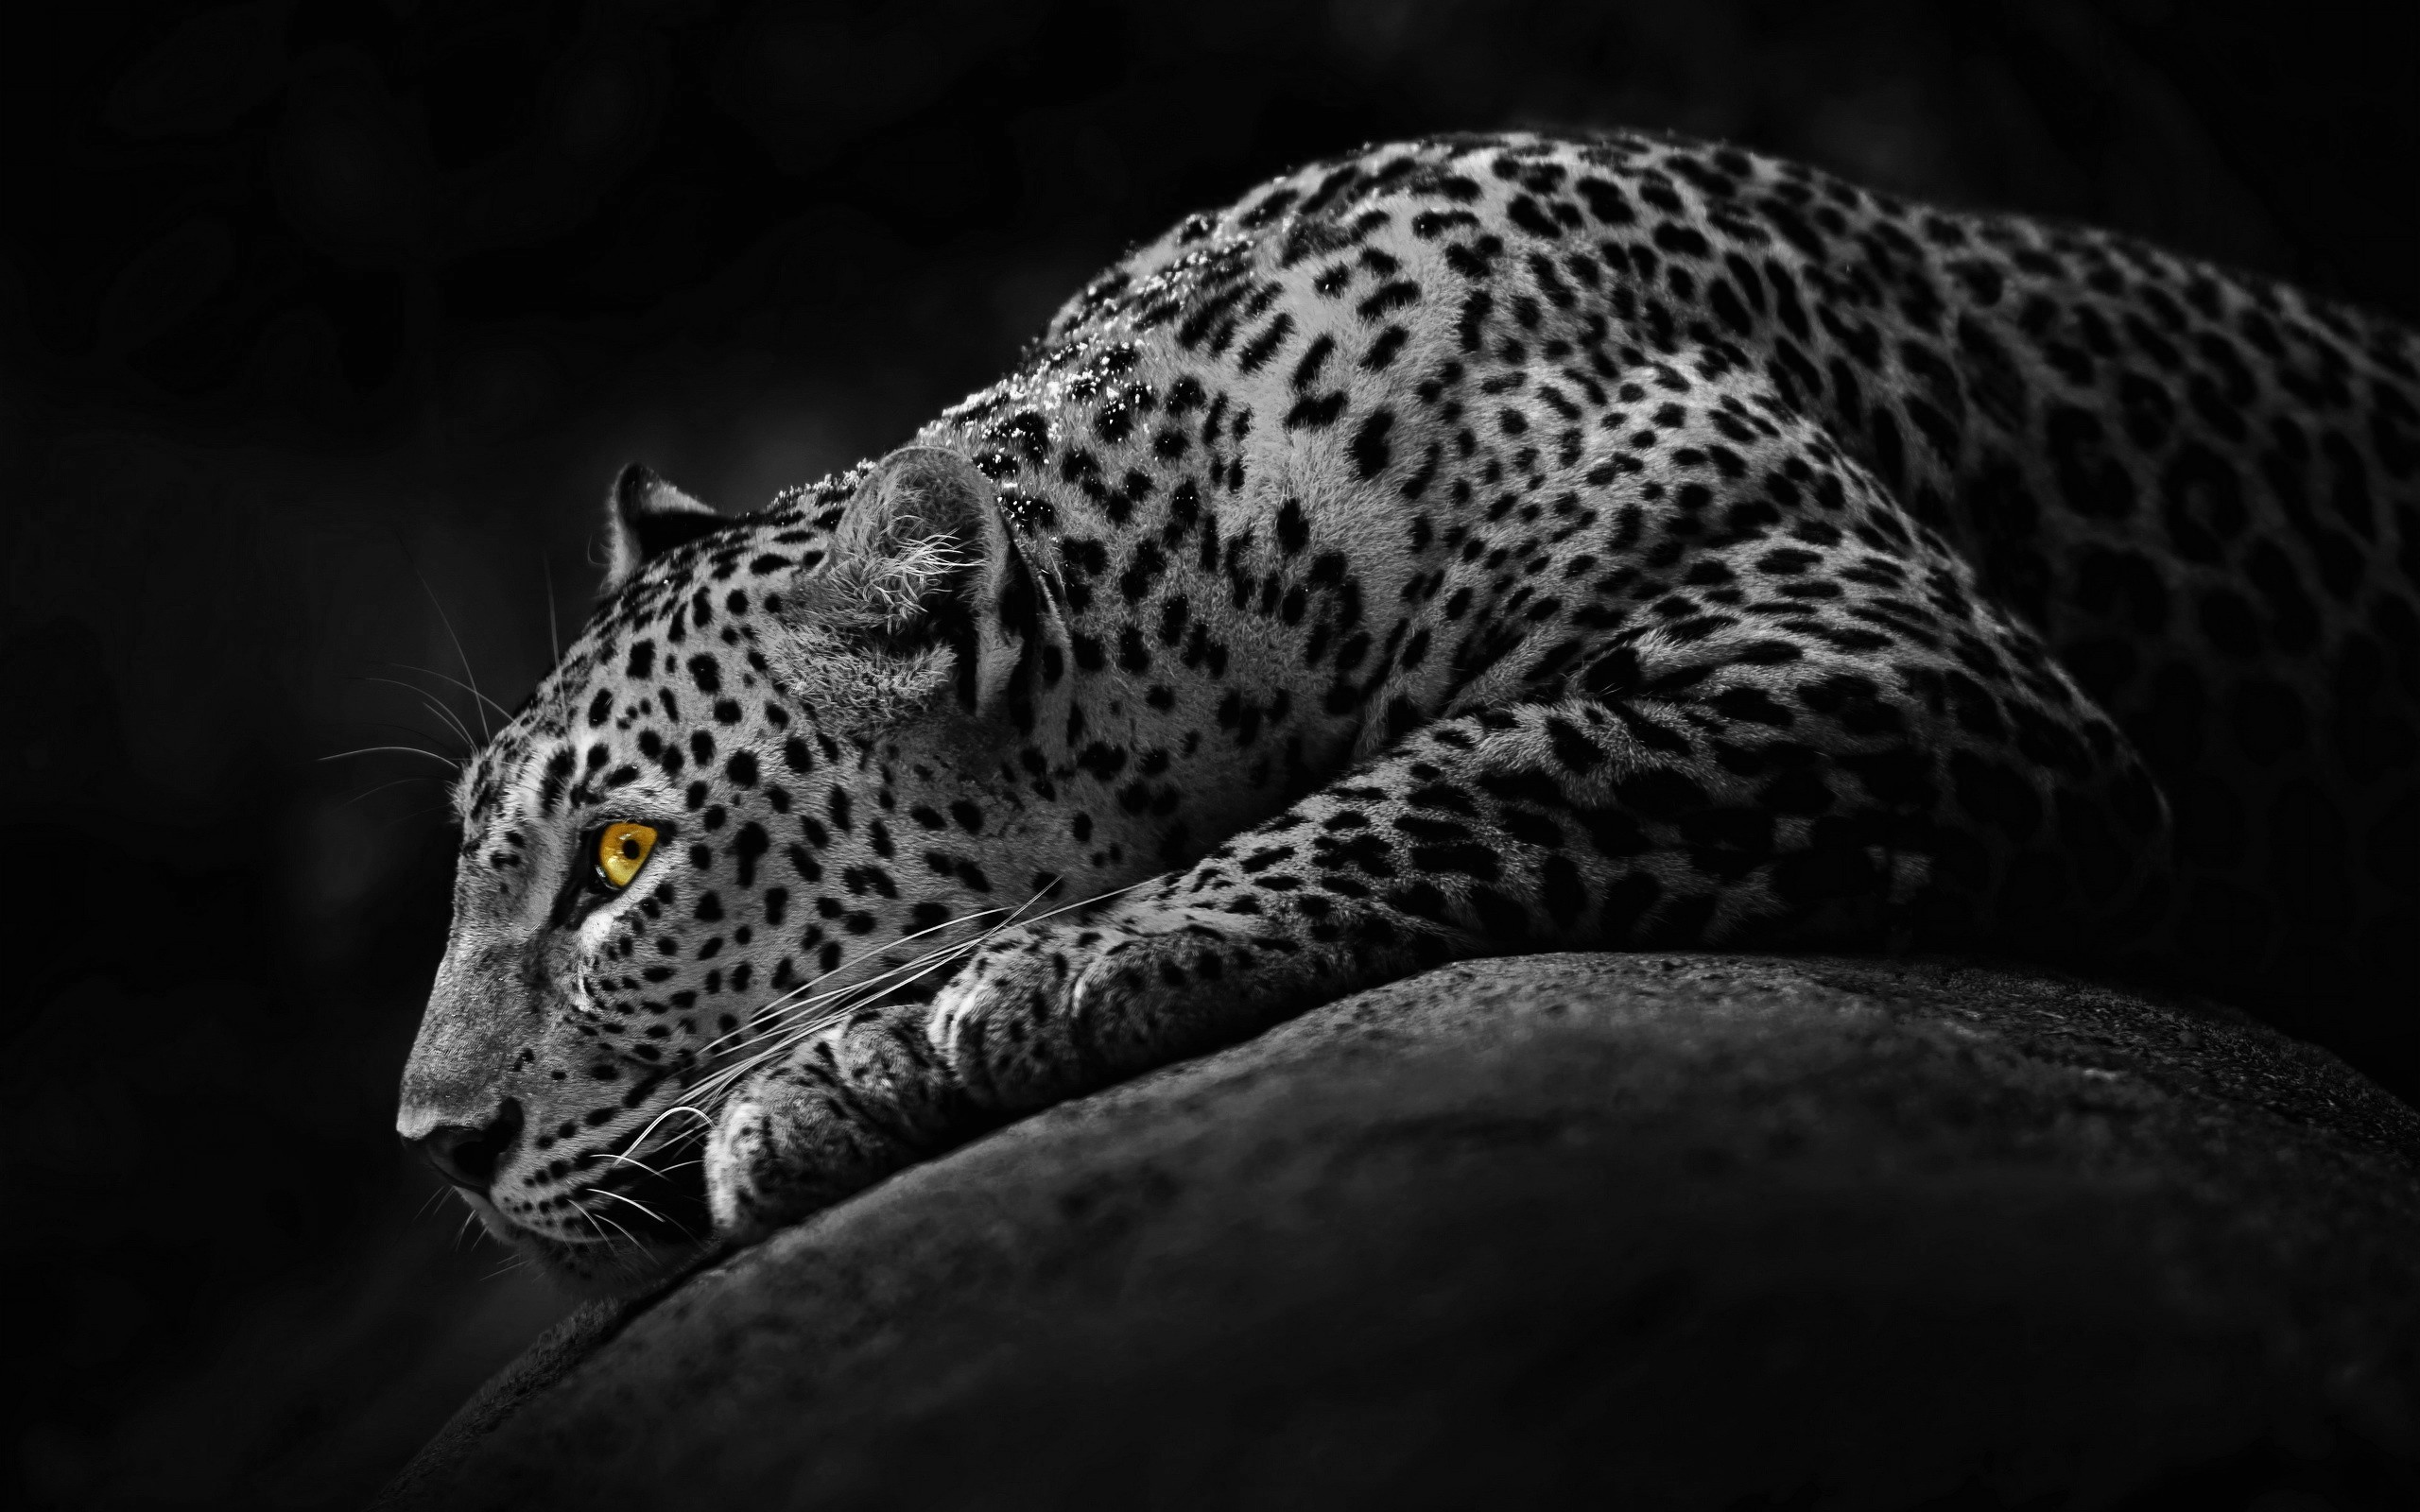 2560x1600 animals, leopards, windows, animal, lg, cats hd cat wallpapers,big